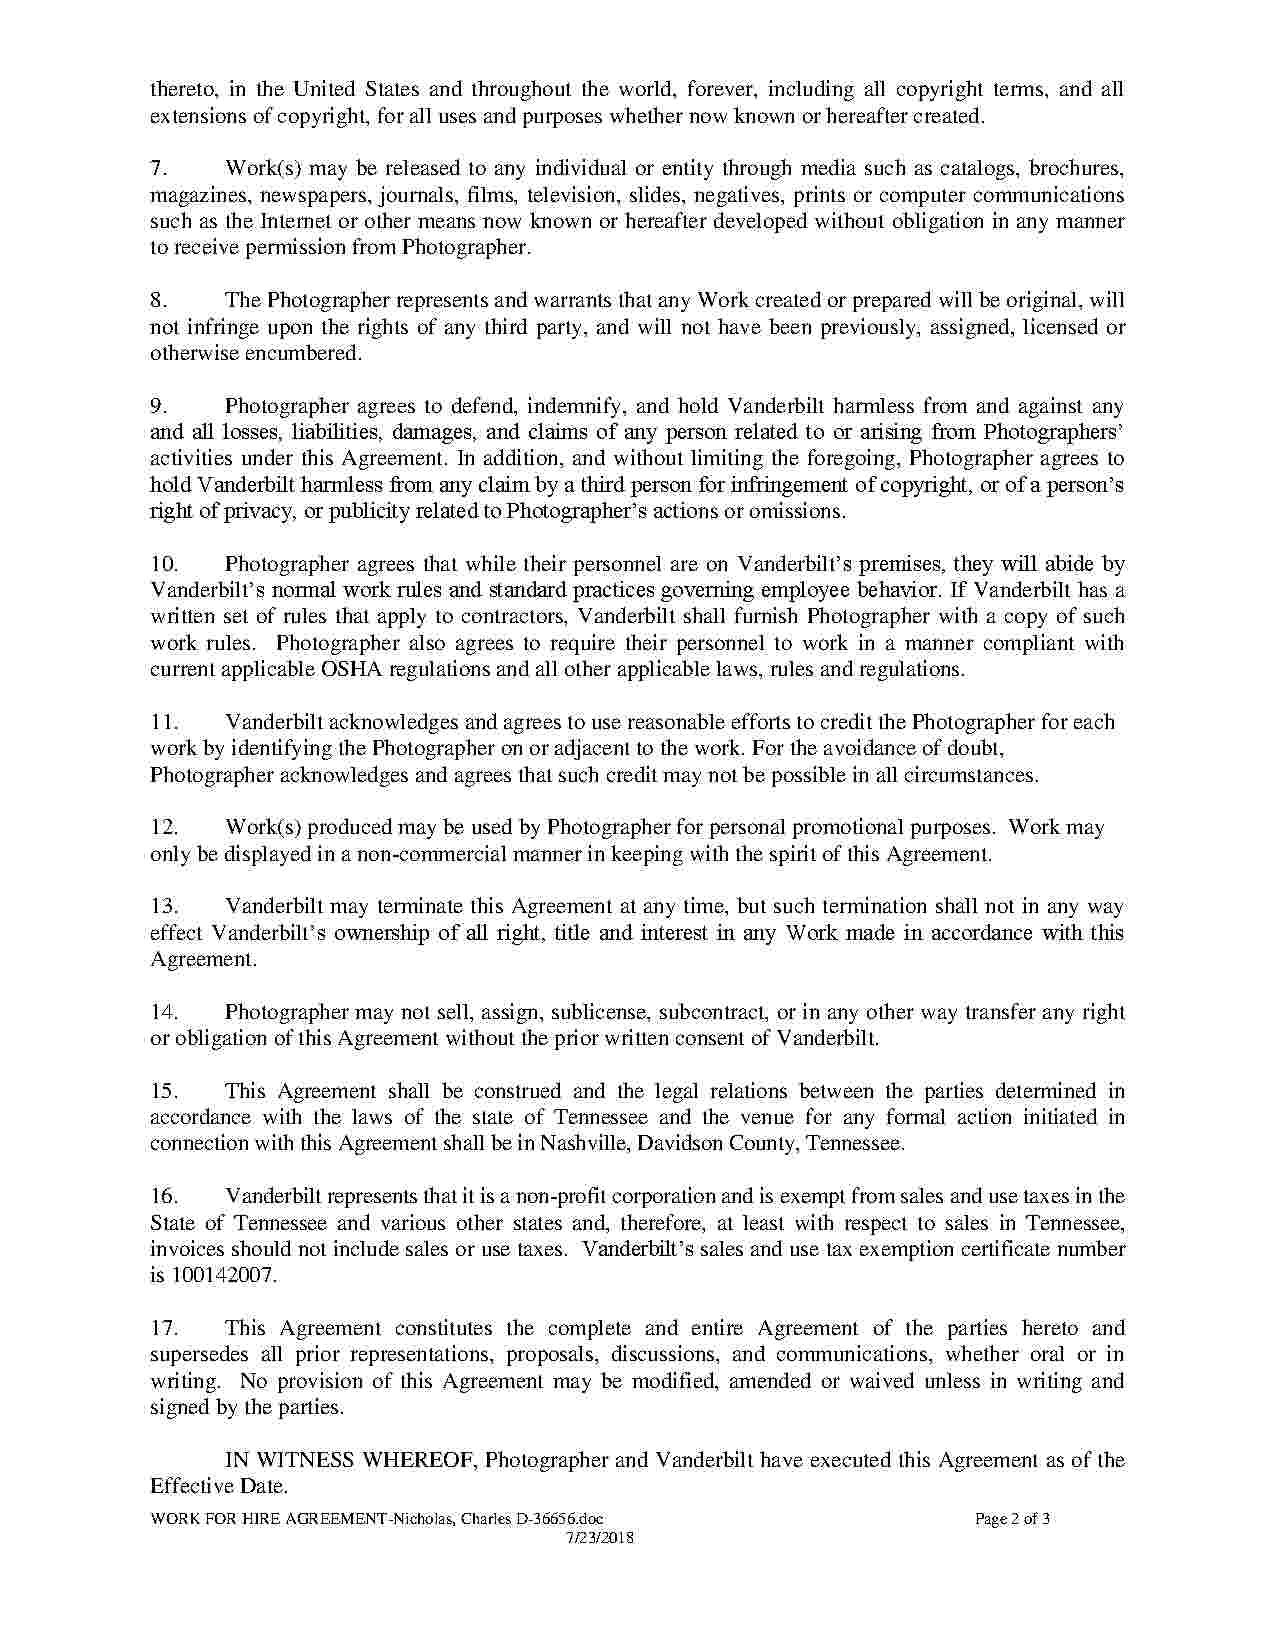 Work For Hire Agreement  Templates Hunter In Work Made For Hire Agreement Template